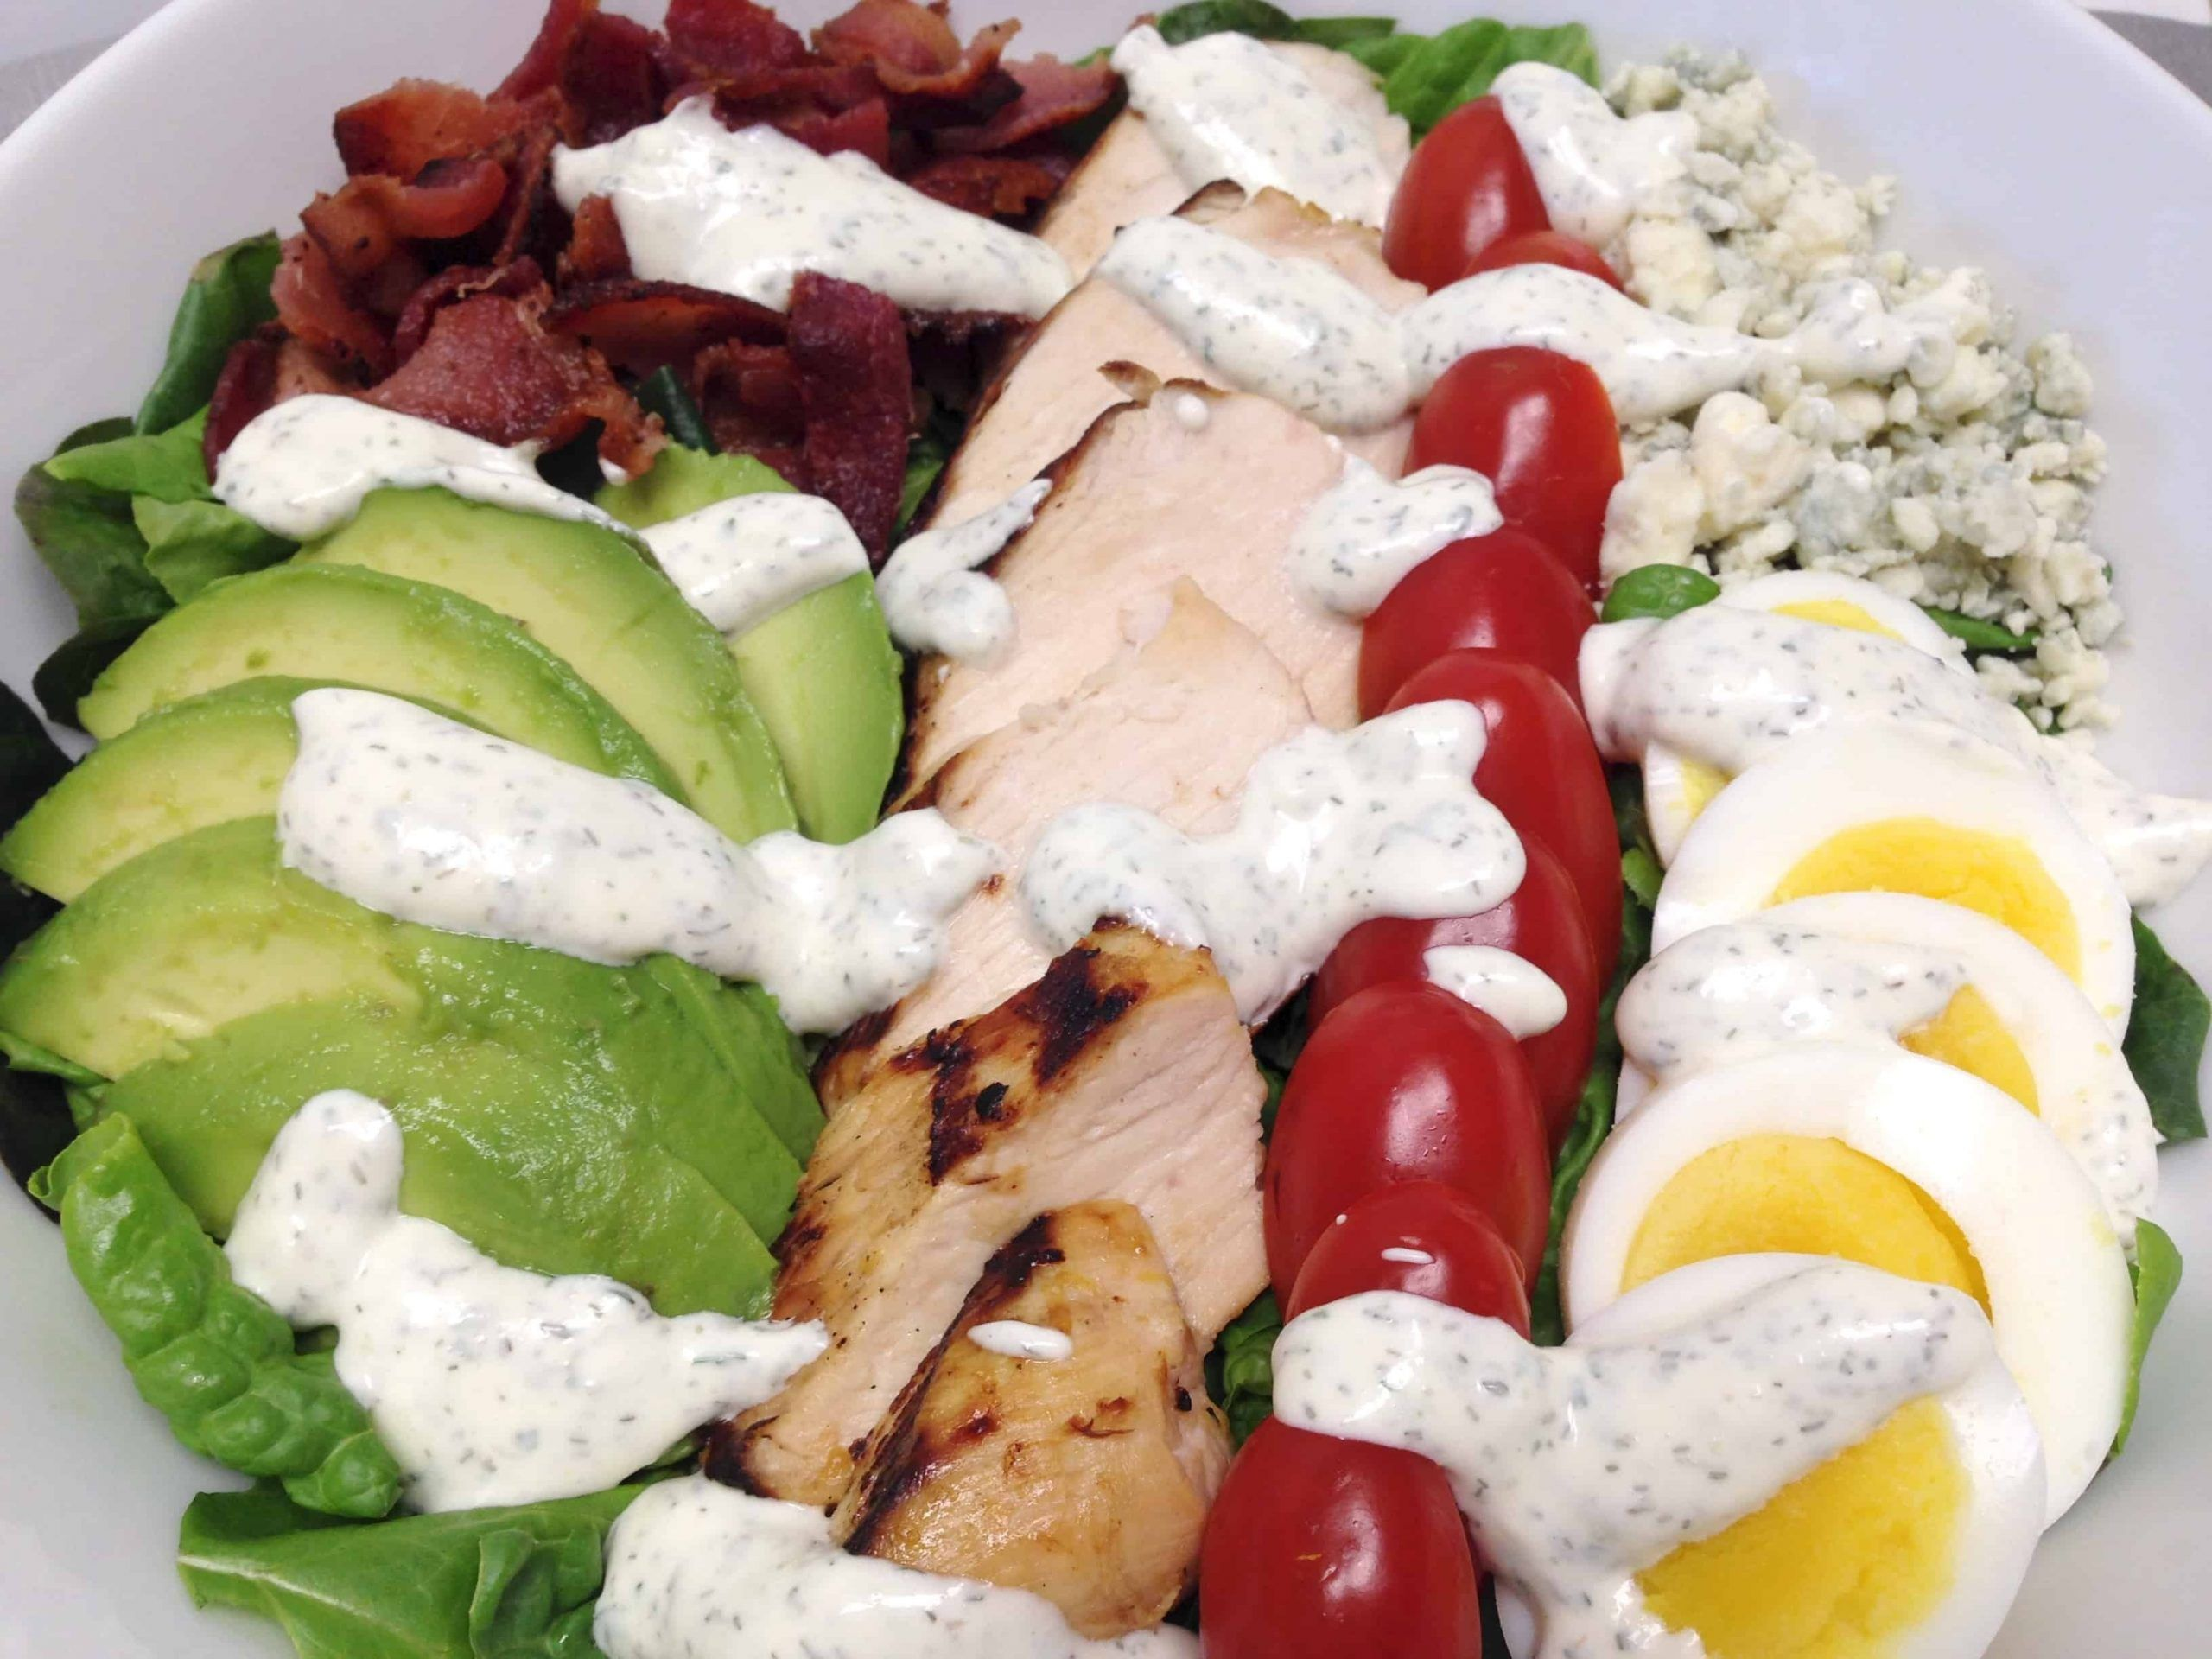 Cobb salad with homemade ranch dressing keto and low